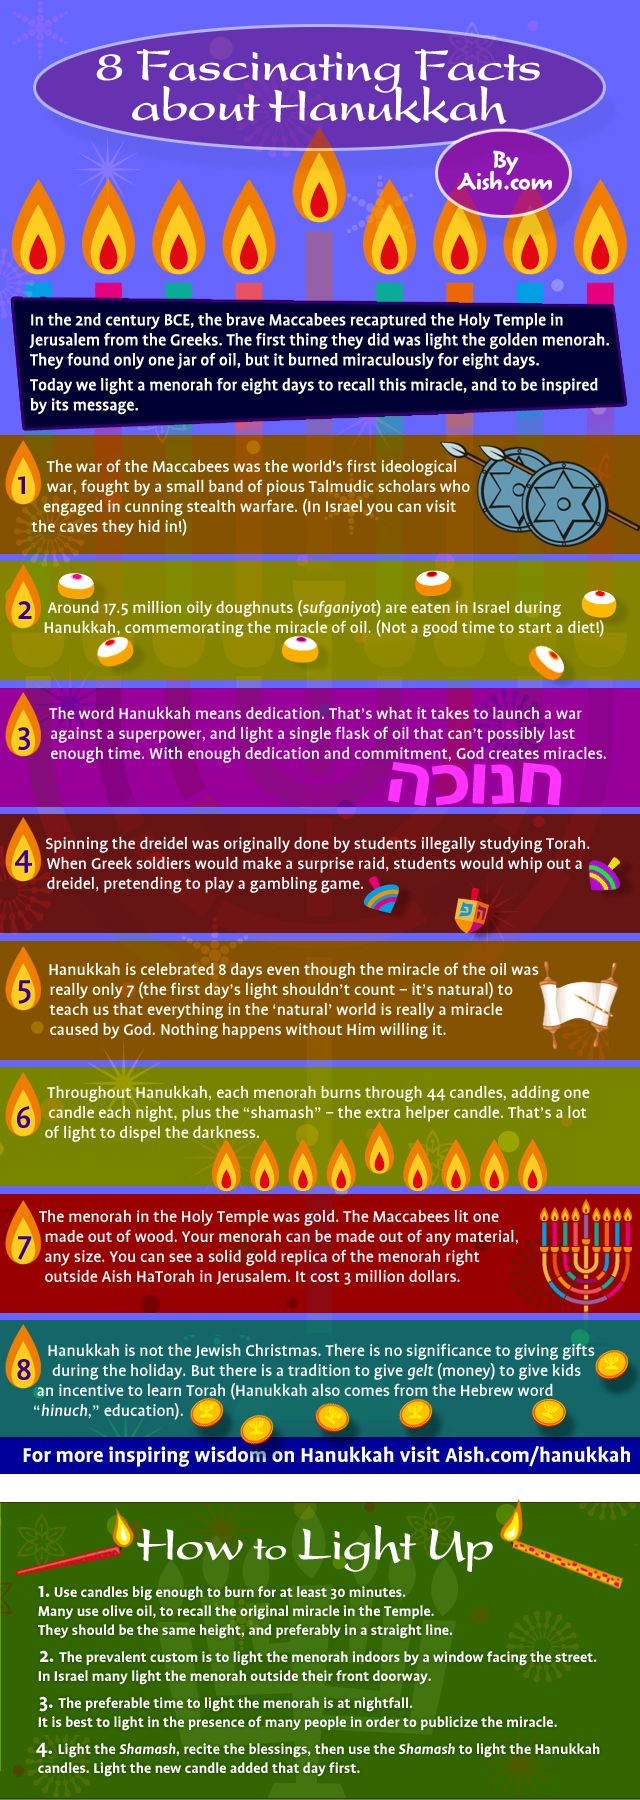 8 Fascinating facts about Hanukkah; An Infographic to SHARE with friends and family.